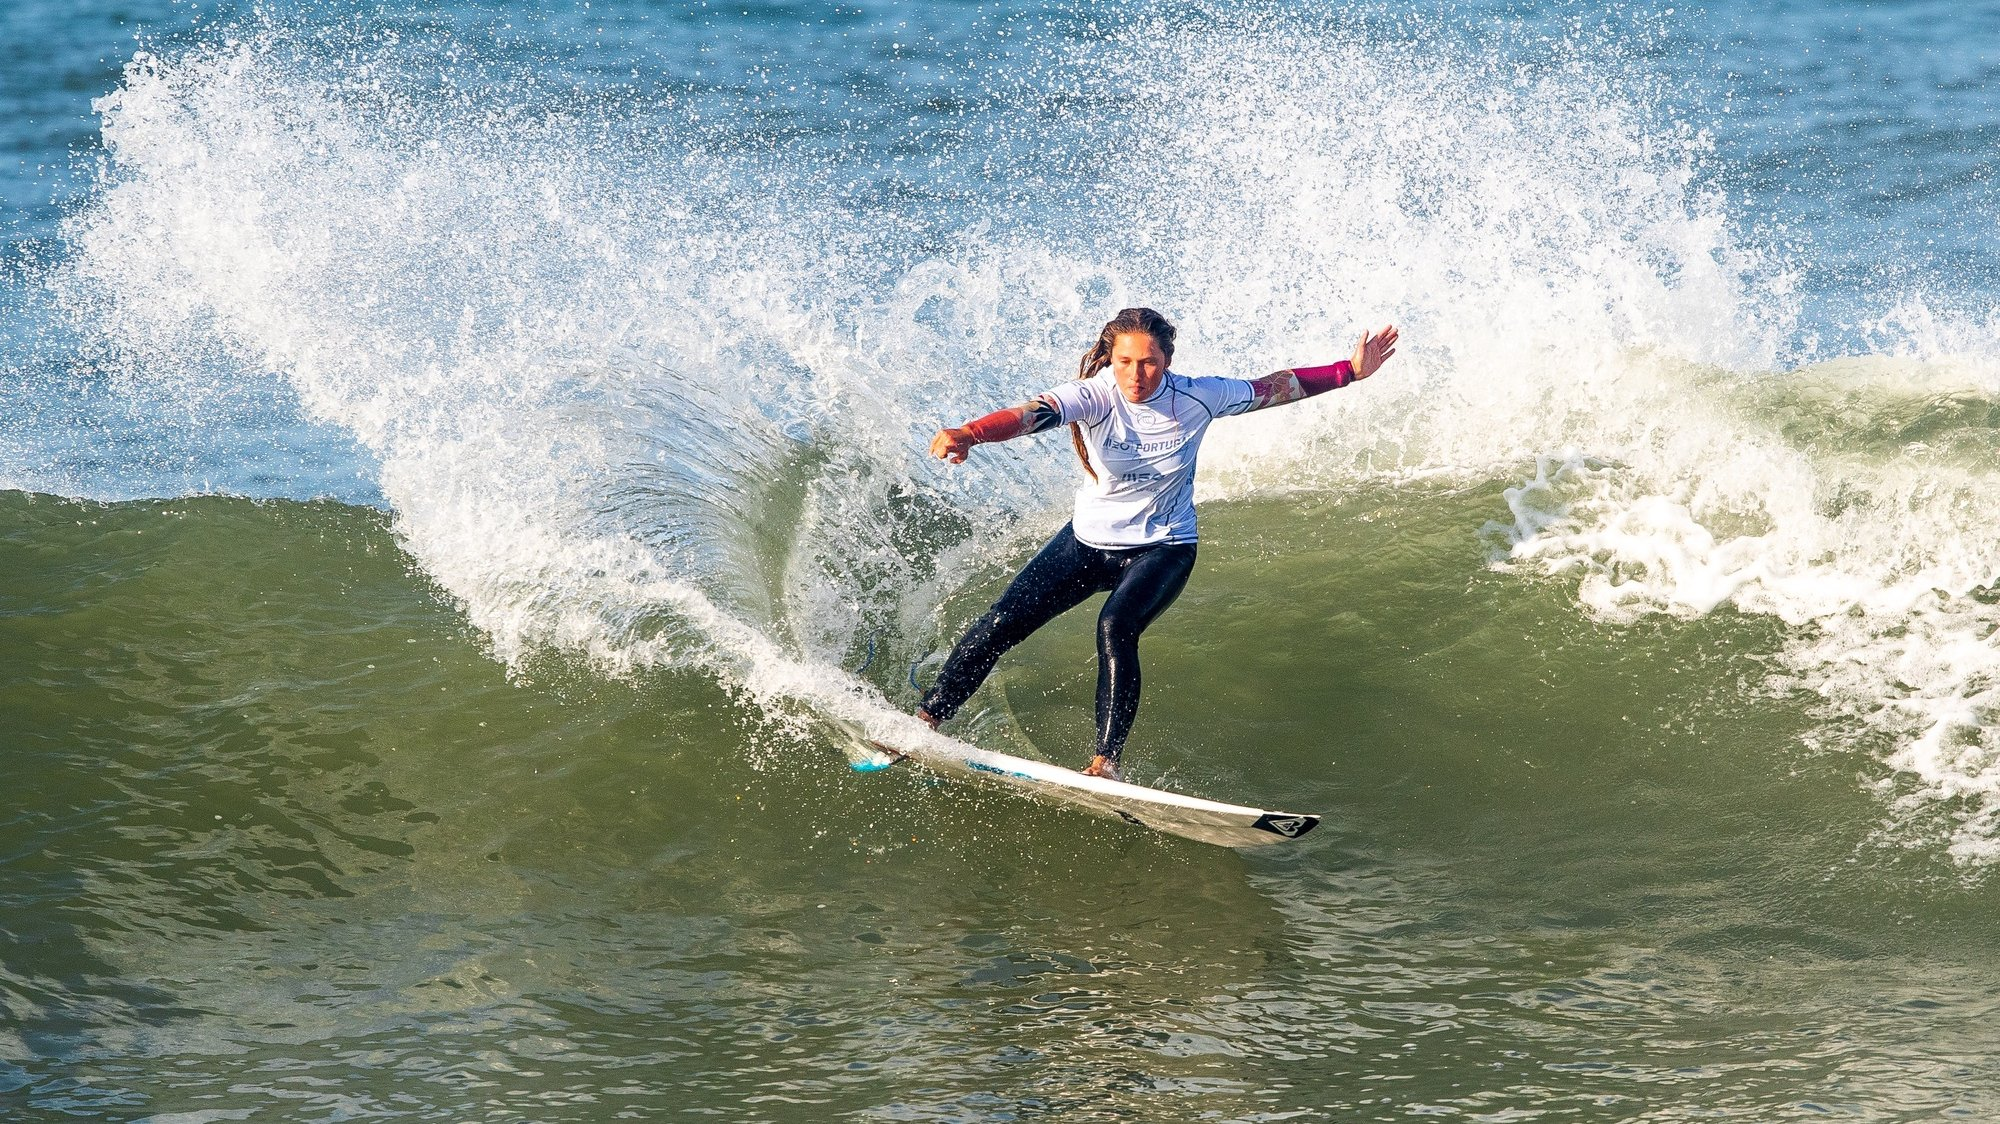 epa08705717 A handout photo made available by the World Surf League (WSL) of Portugal's Francisca Veselko in action during round 1 of the MEO Portugal Cup surfing WSL Countdown event in Ericeira, Portugal, 29 September 2020.  EPA/Damien Poullenot HANDOUT  HANDOUT EDITORIAL USE ONLY/NO SALES